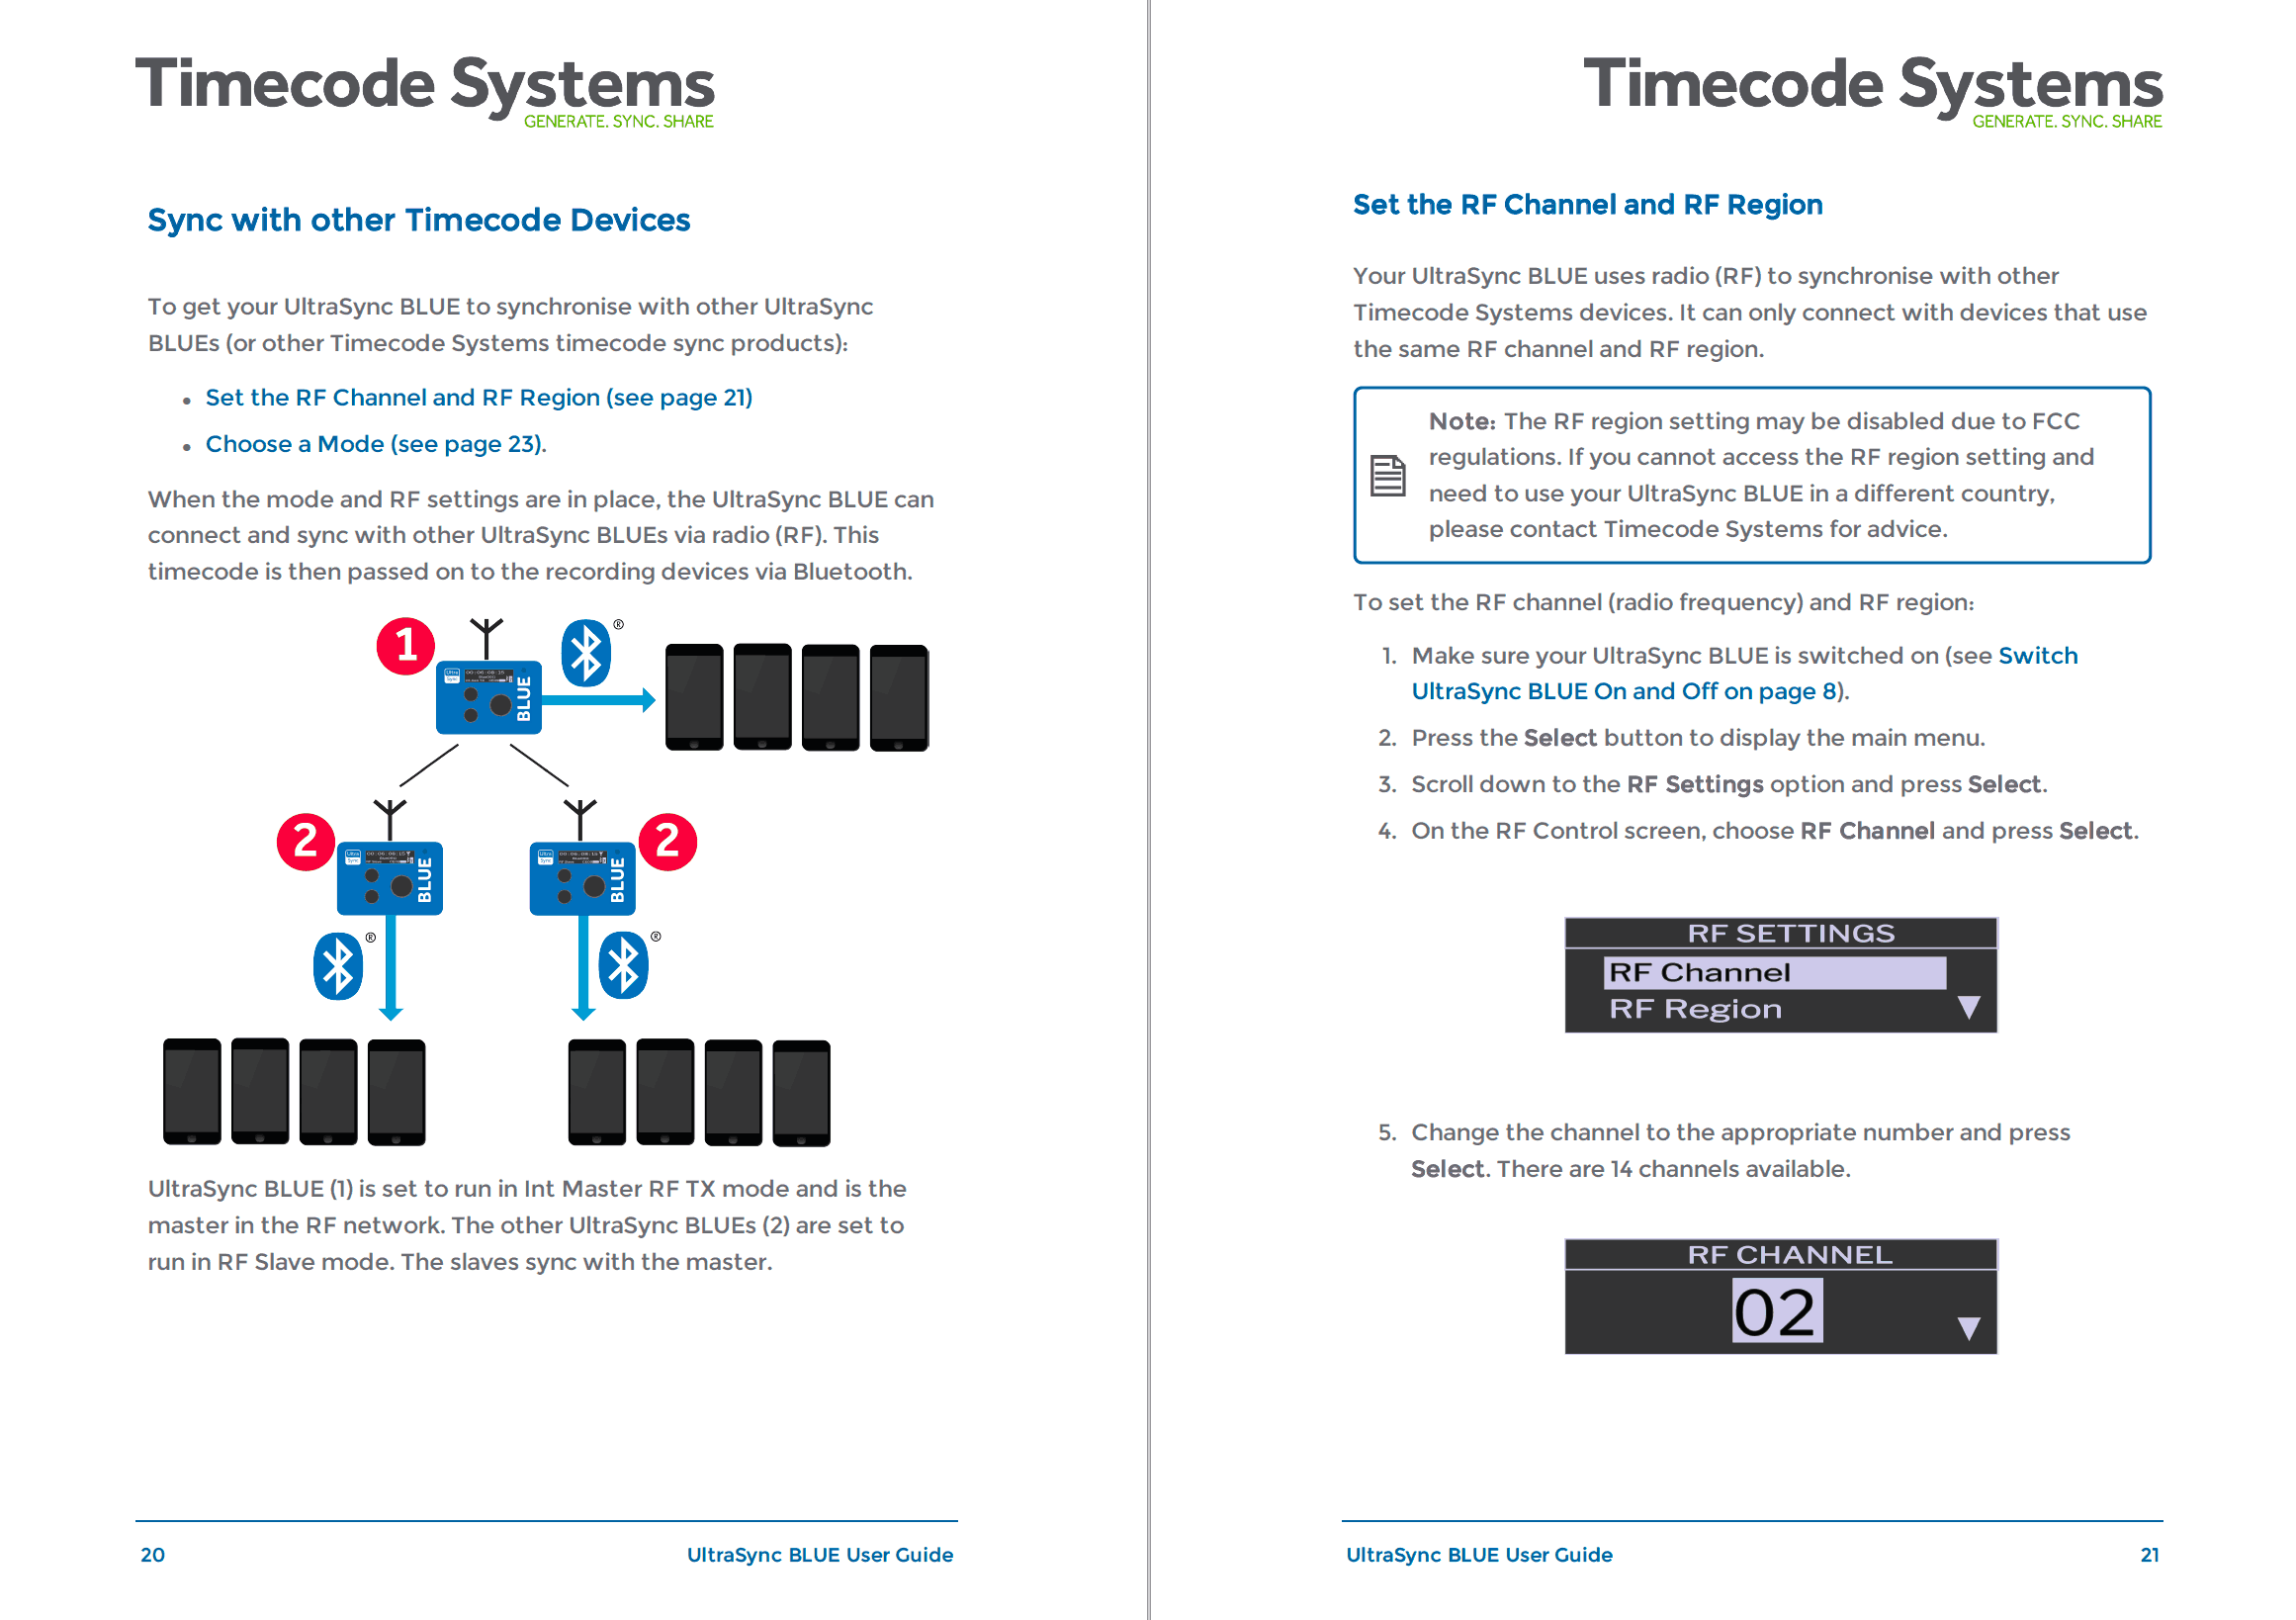 Timecode Systems user guide